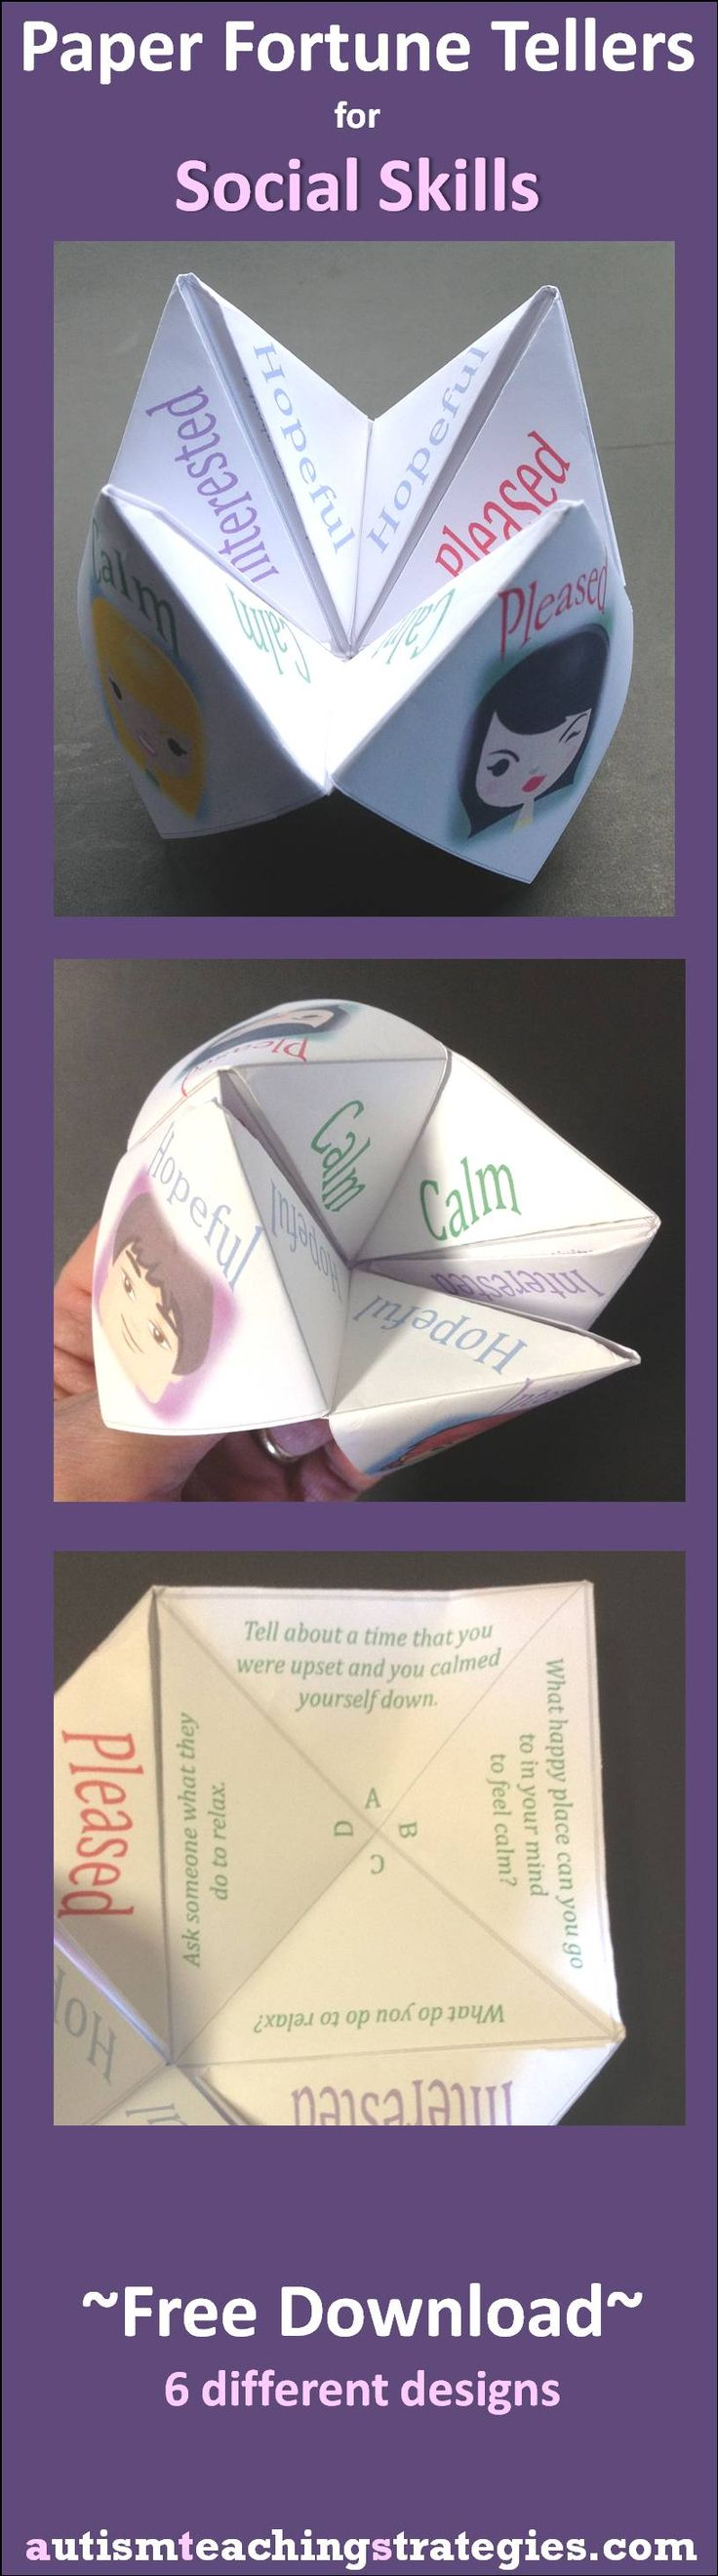 "This paper ""fortune teller"" is part of a set of nine to be used to stimulate interest in social skills teaching."